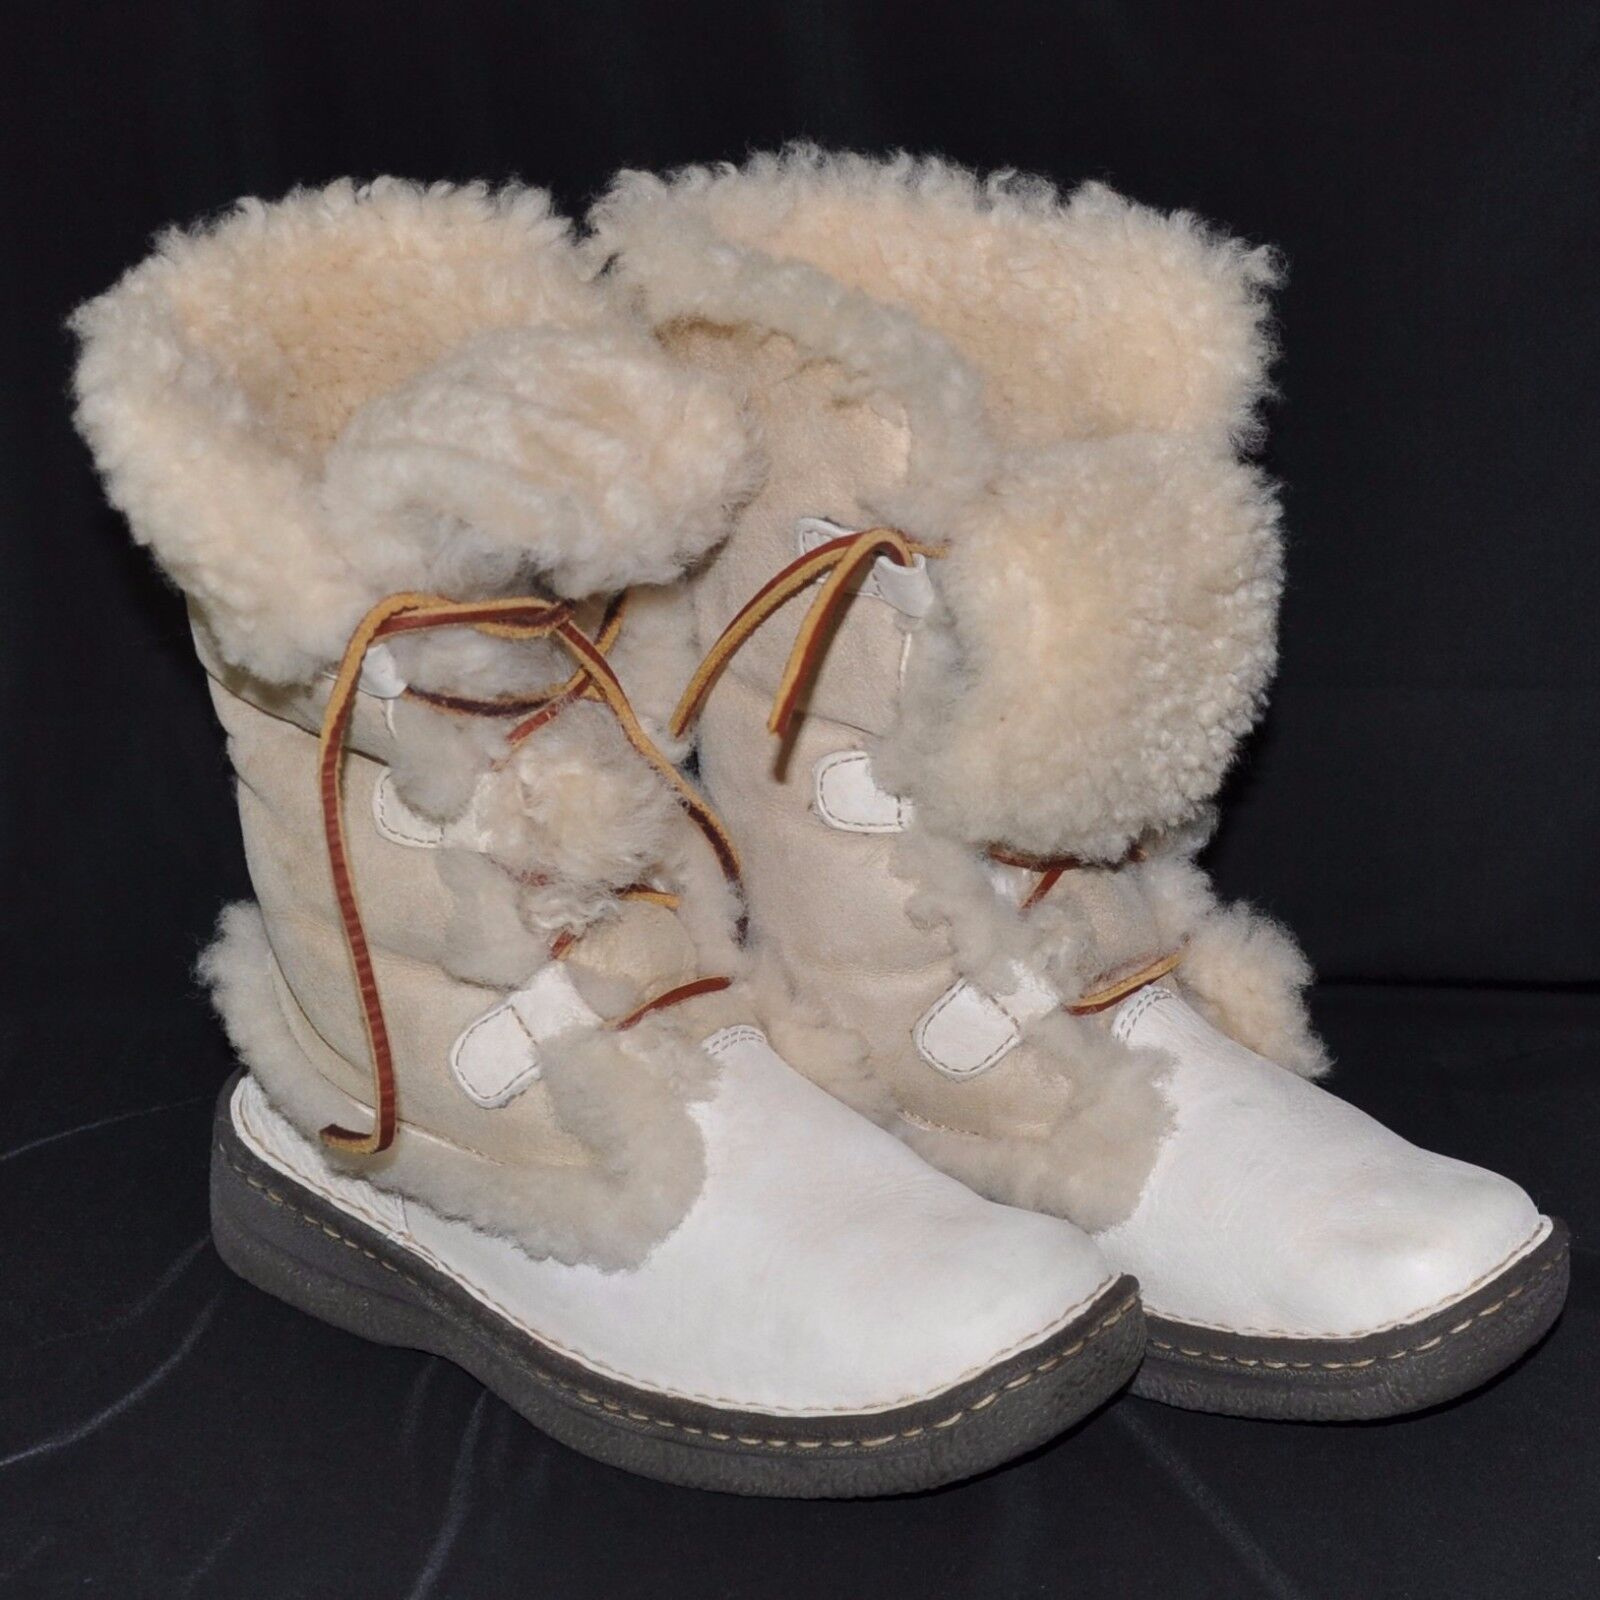 Born Nome Boots Leather Suede Shearling  Sz Sz Sz 6 Ivory Cream Lace Up UK 36.5 Warm f3e5c4